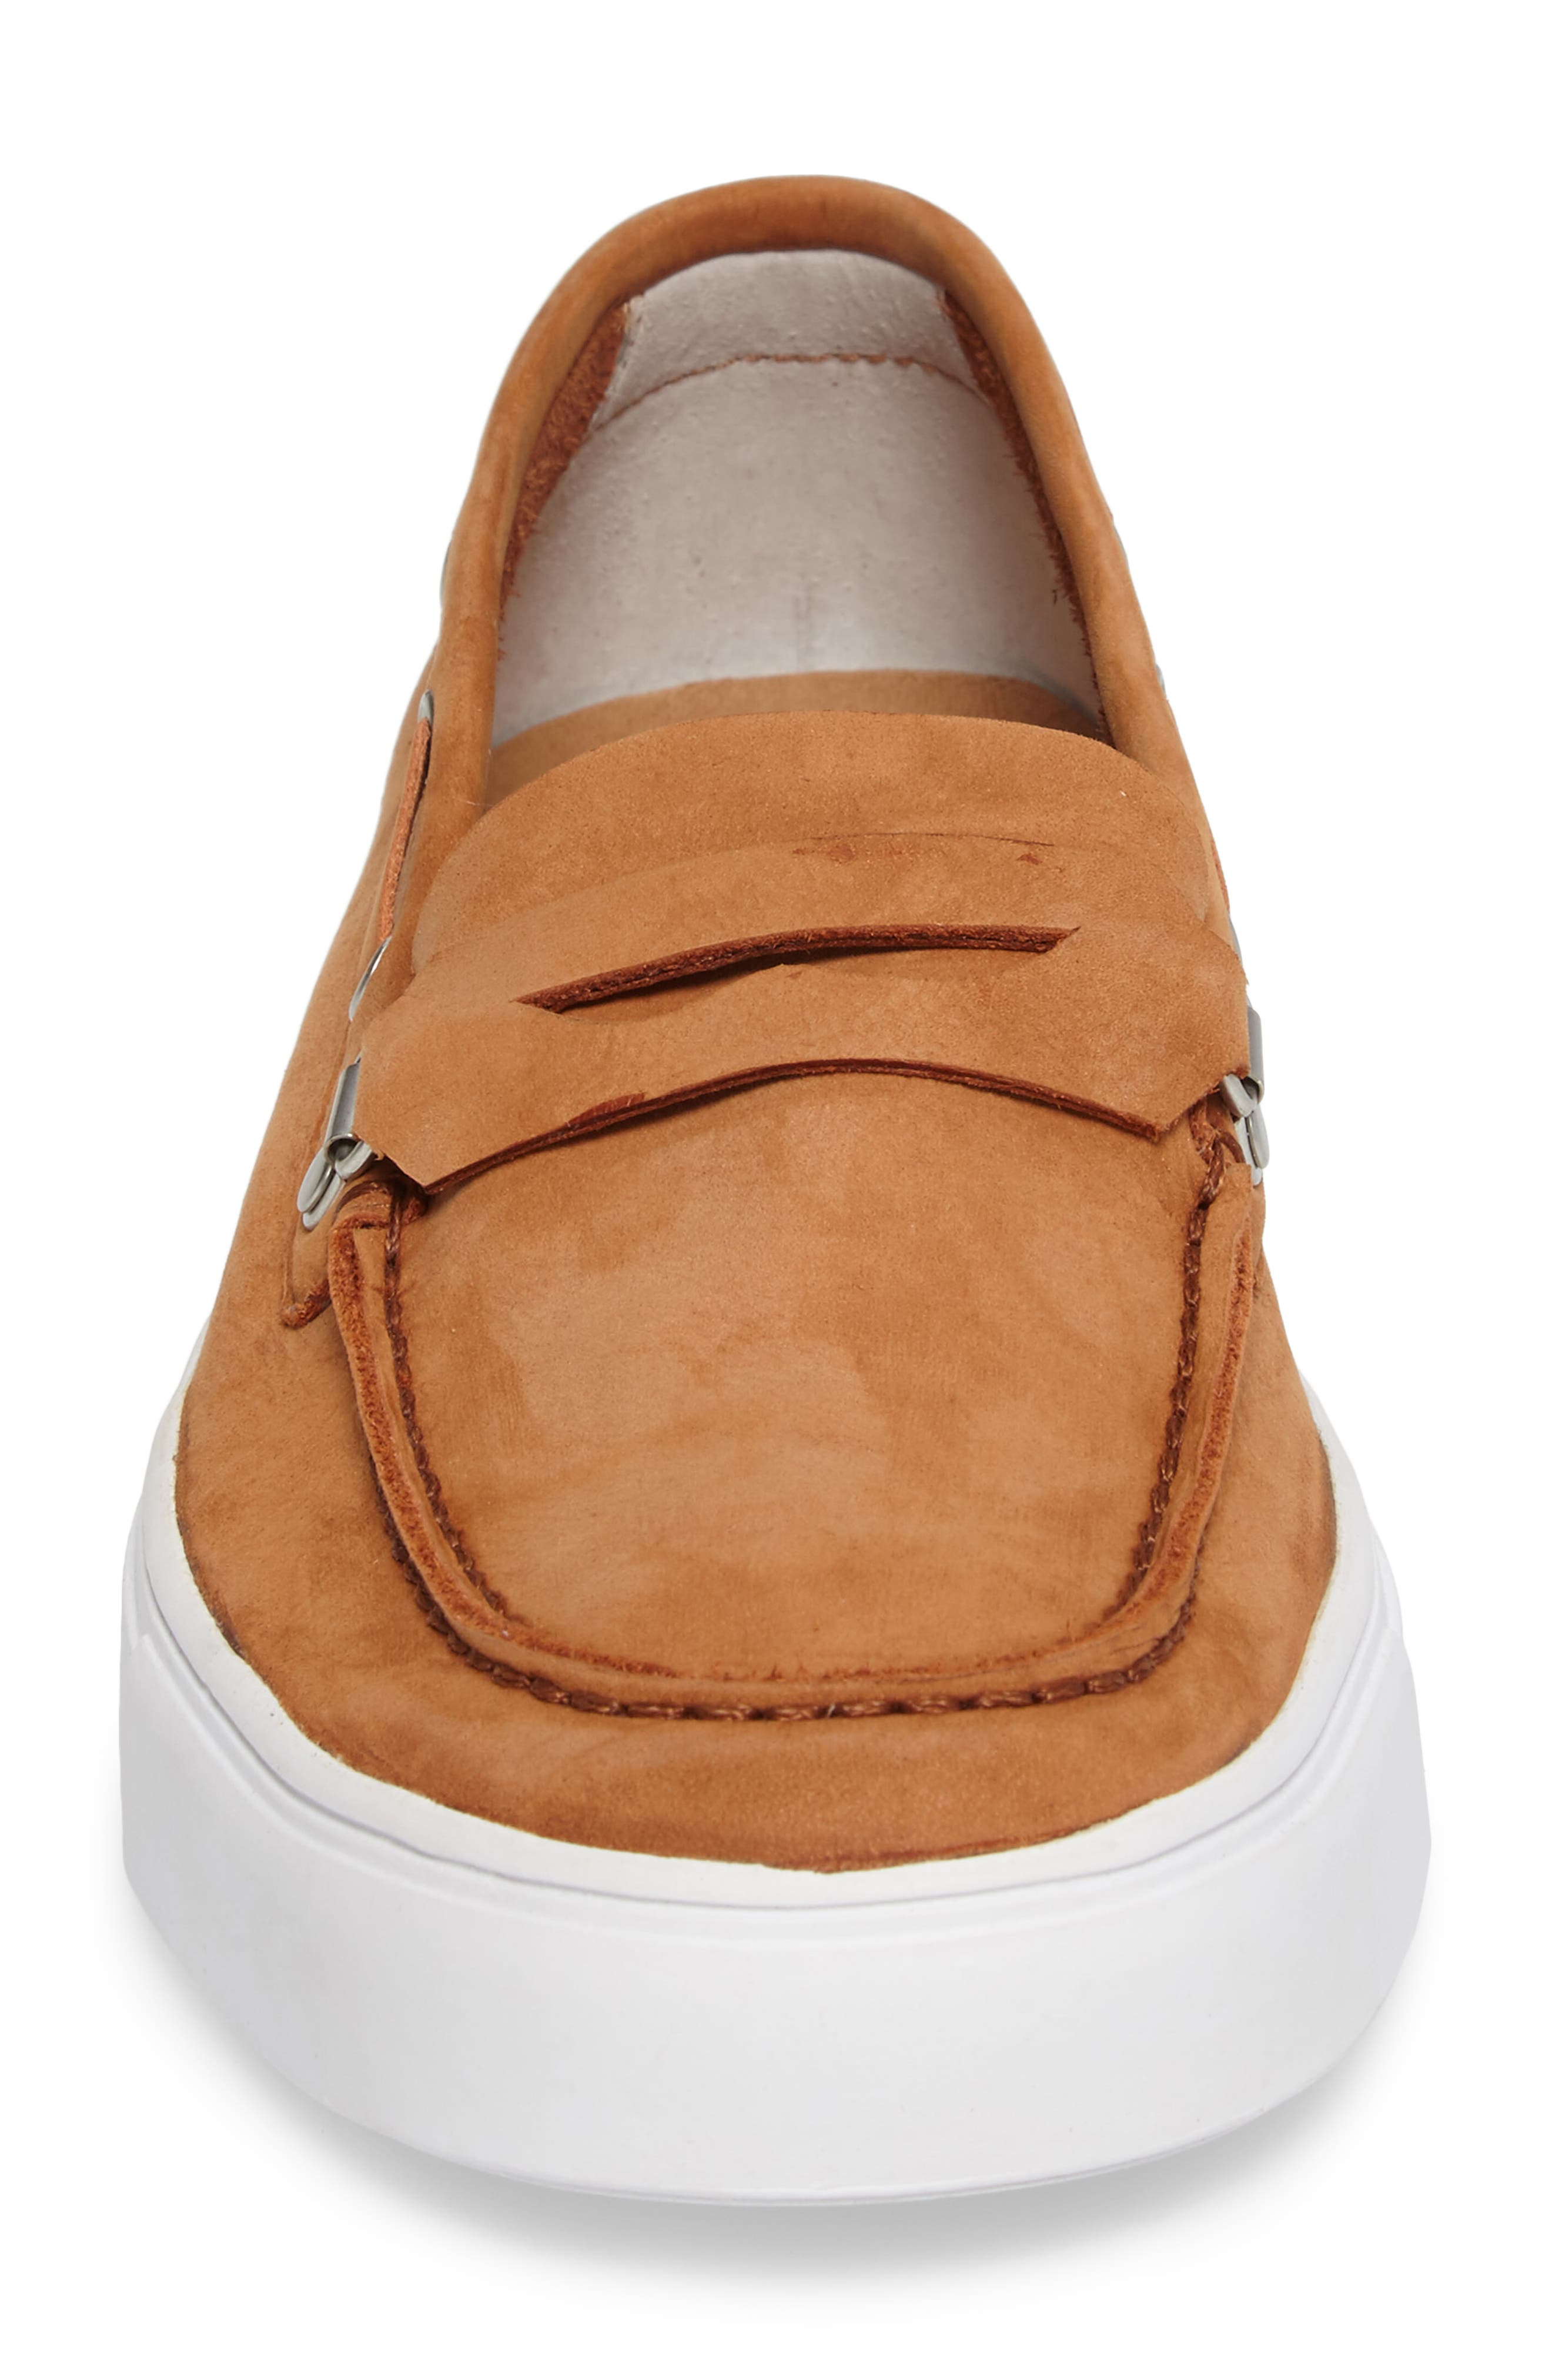 NM15 Loafer Sneaker,                             Alternate thumbnail 4, color,                             241